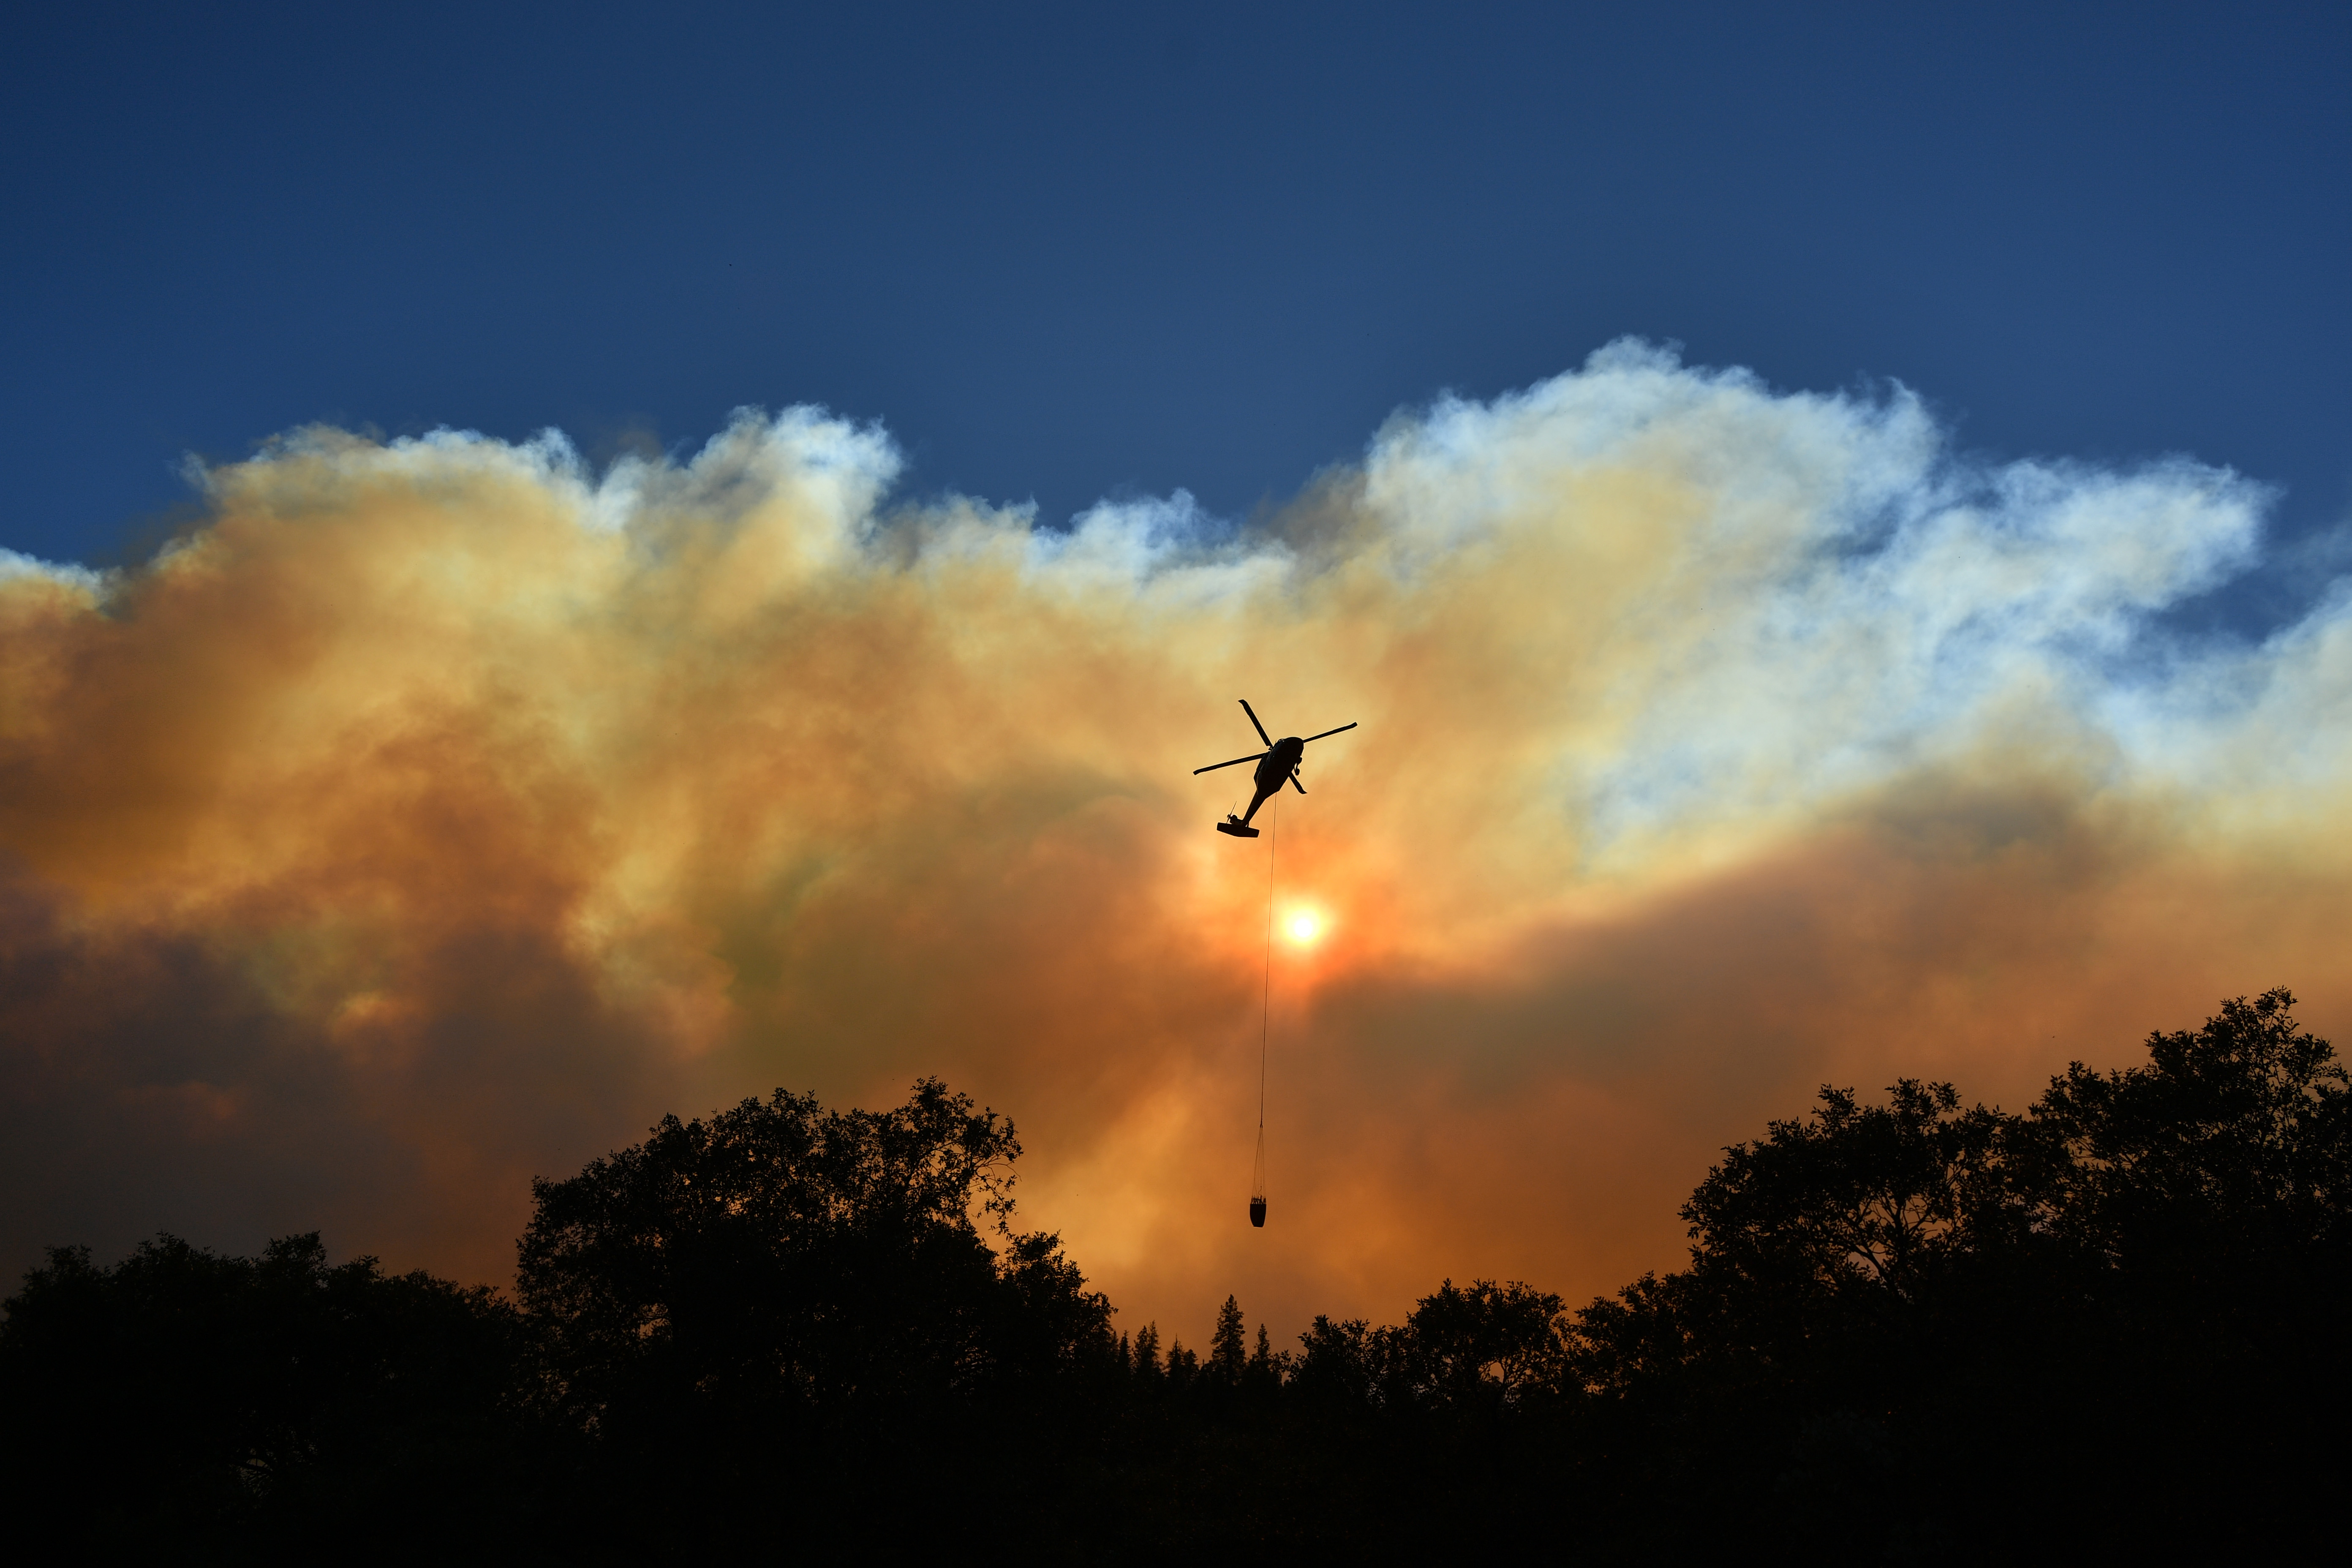 California power firm to pay $1.7 bn over wildfires